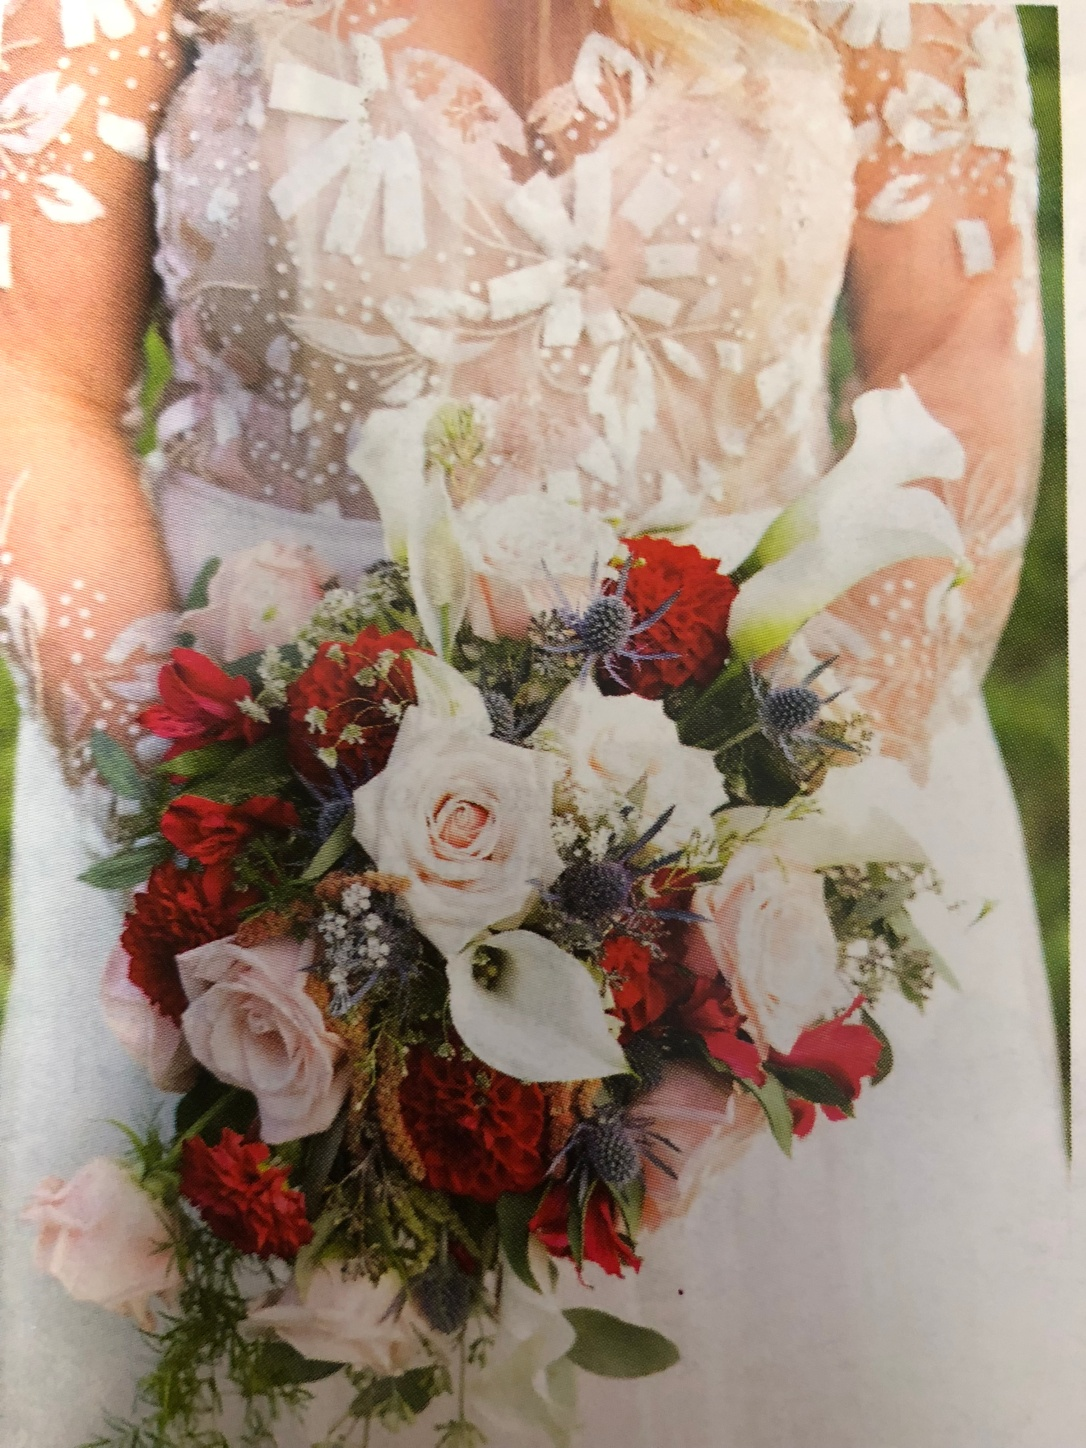 Feolas flowers 196 south kanawha st buckhannon wv 26201 wedding season is here we offer corsages boutonnieres centerpieces seating decorations and custom pieces stop in today to see our photo books and get junglespirit Images